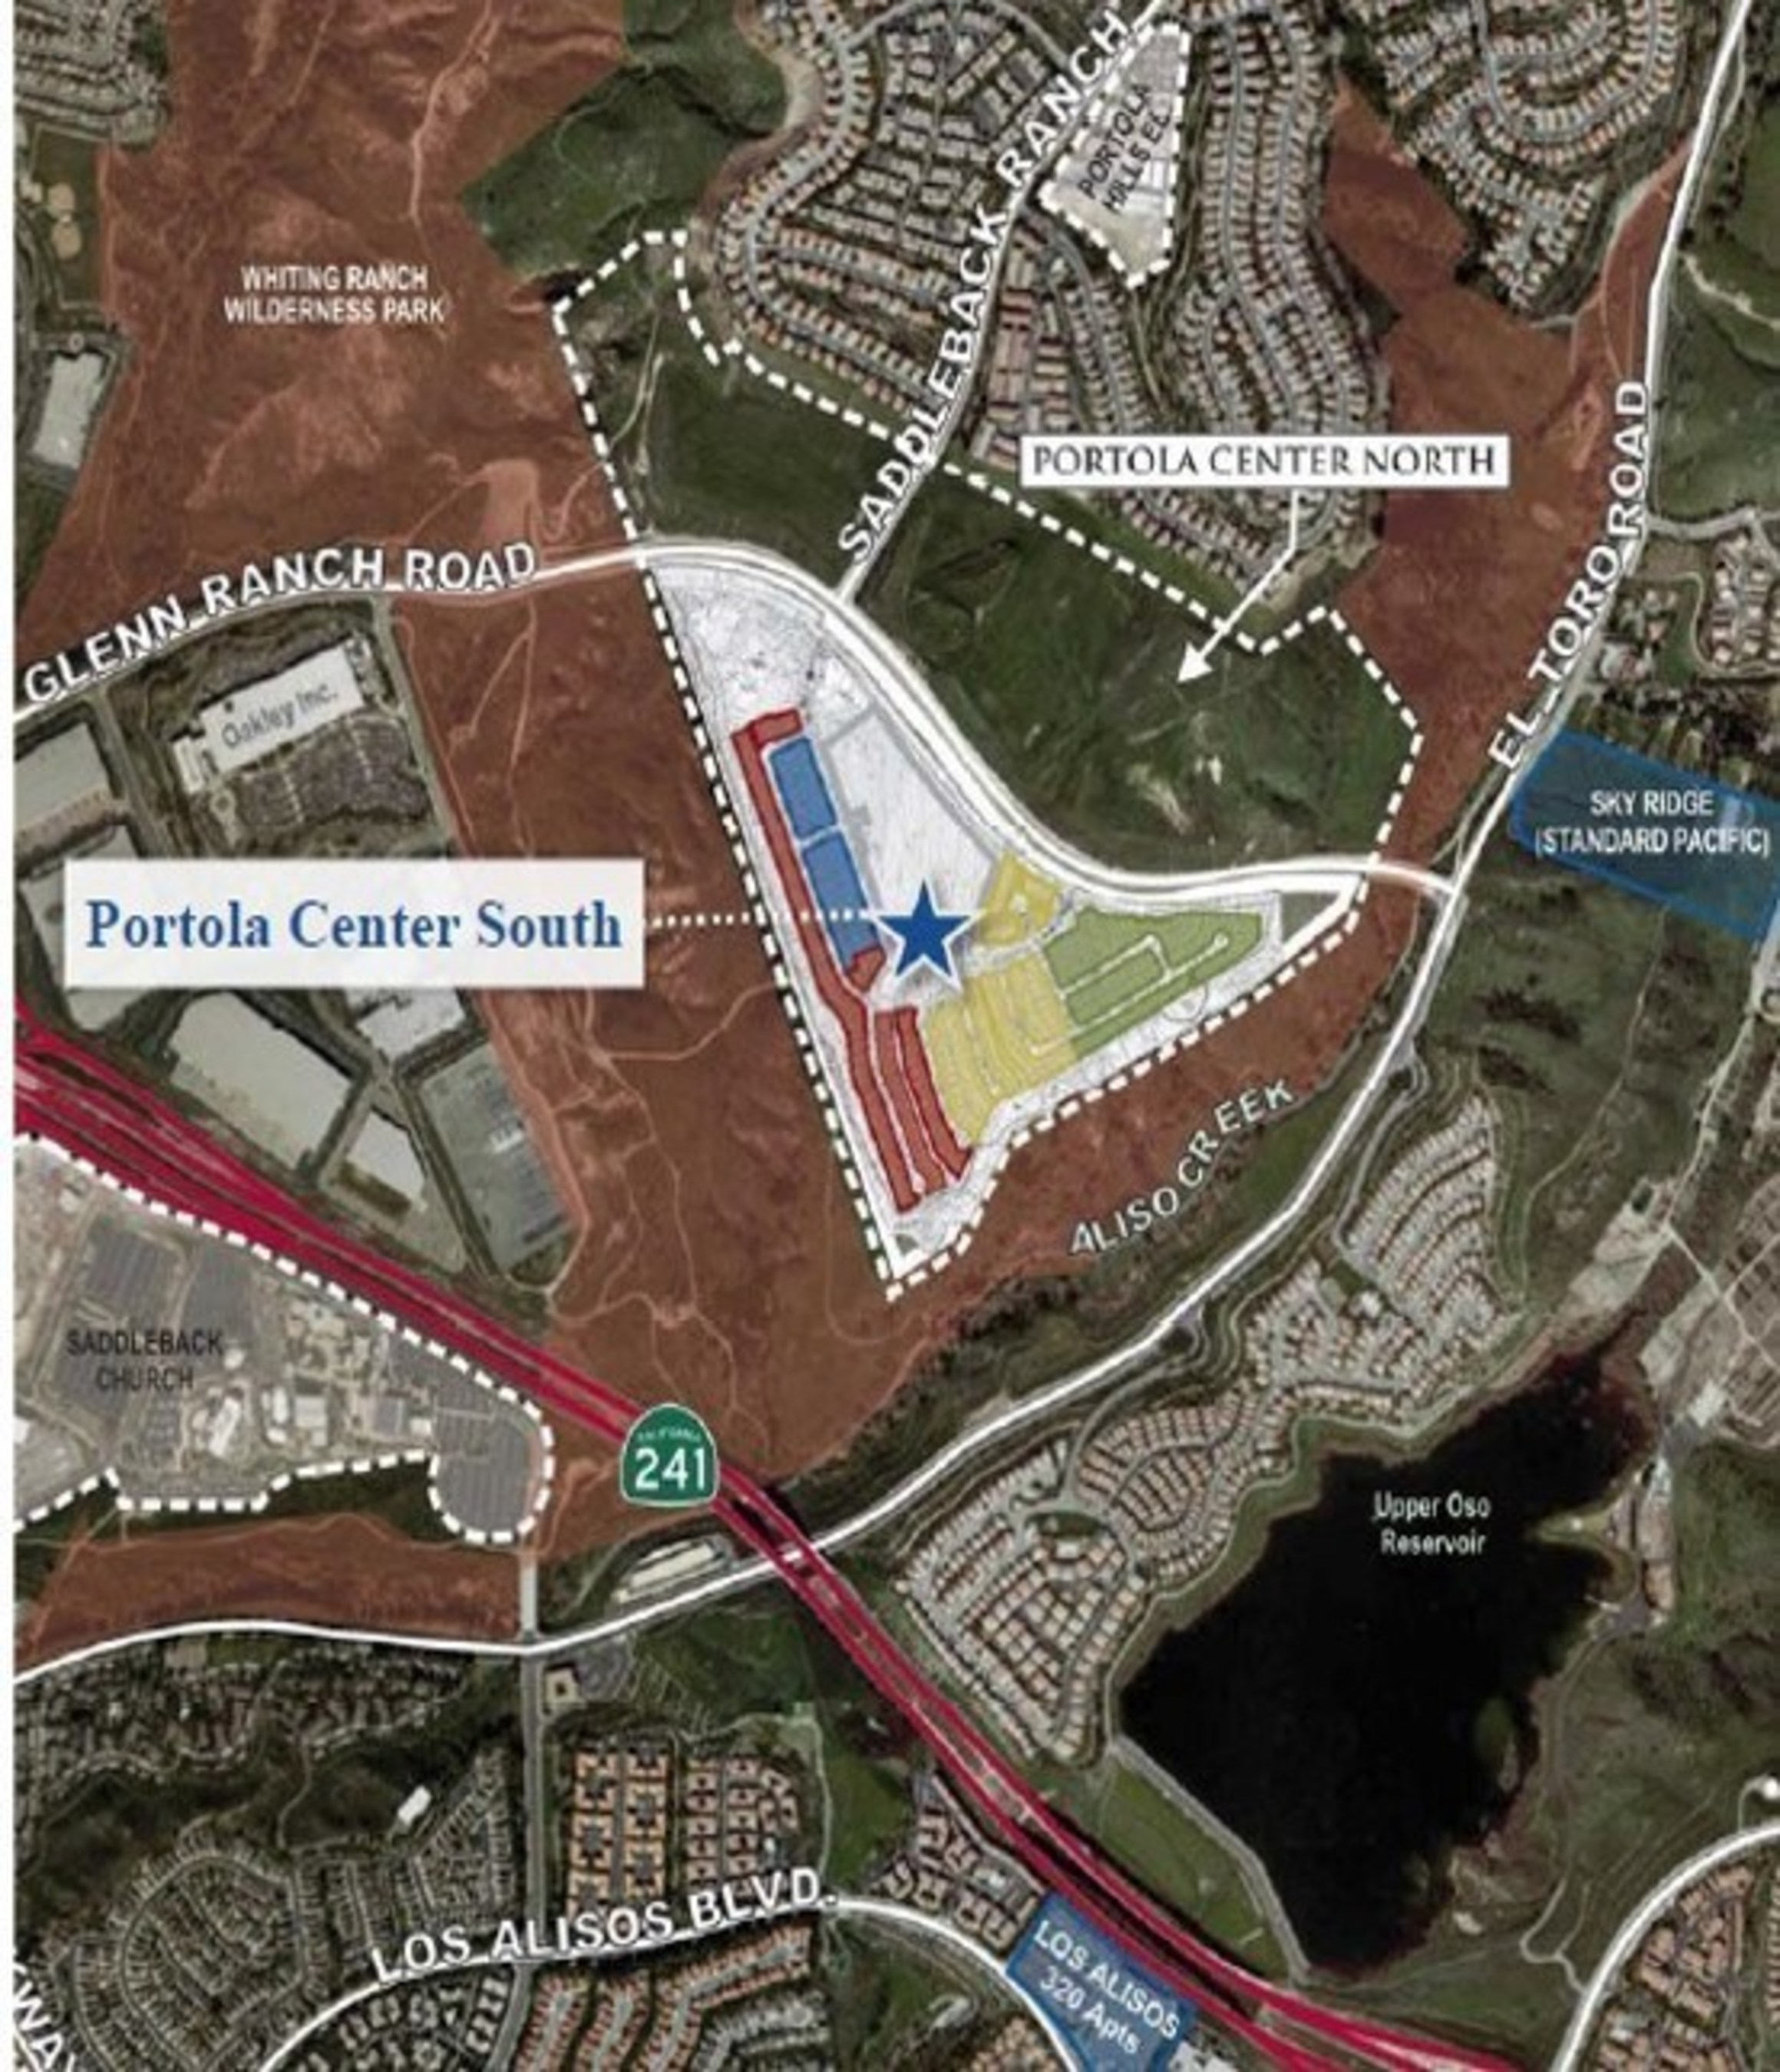 Portola Center South - $100 Million Land Transaction in Lake Forest, CA